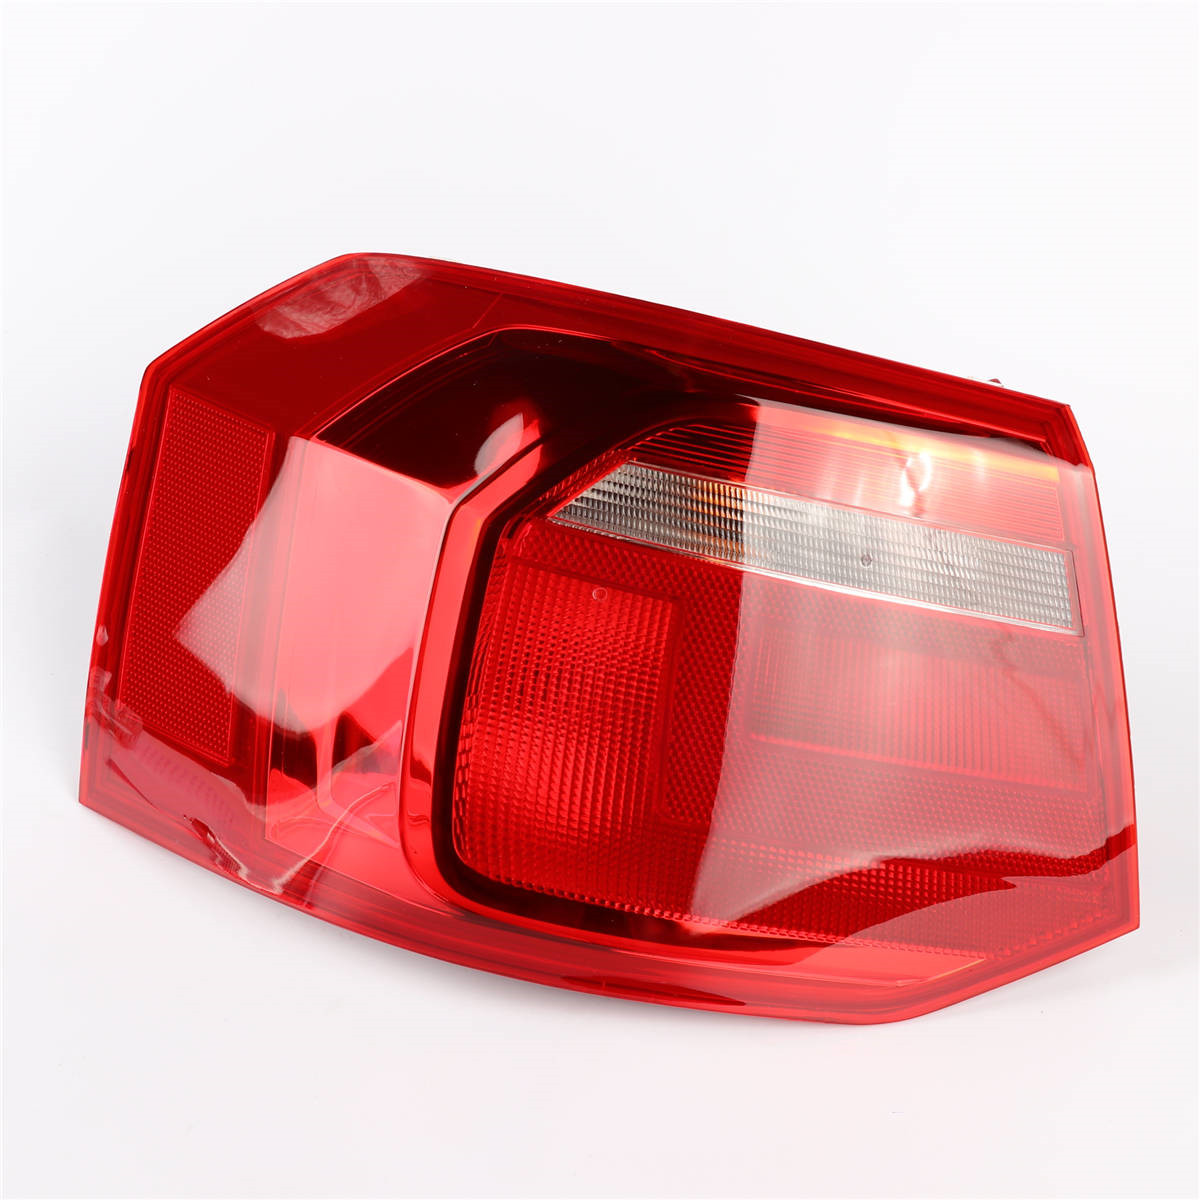 Left Side OEM 1Pcs Red Color LED Light Tail Lights Rear Lamp For Volkswagen VW Jetta 2013-2019 MK6 31G 945 095 accent verna solaris for hyundai led tail lamp 2011 2013 year red color yz